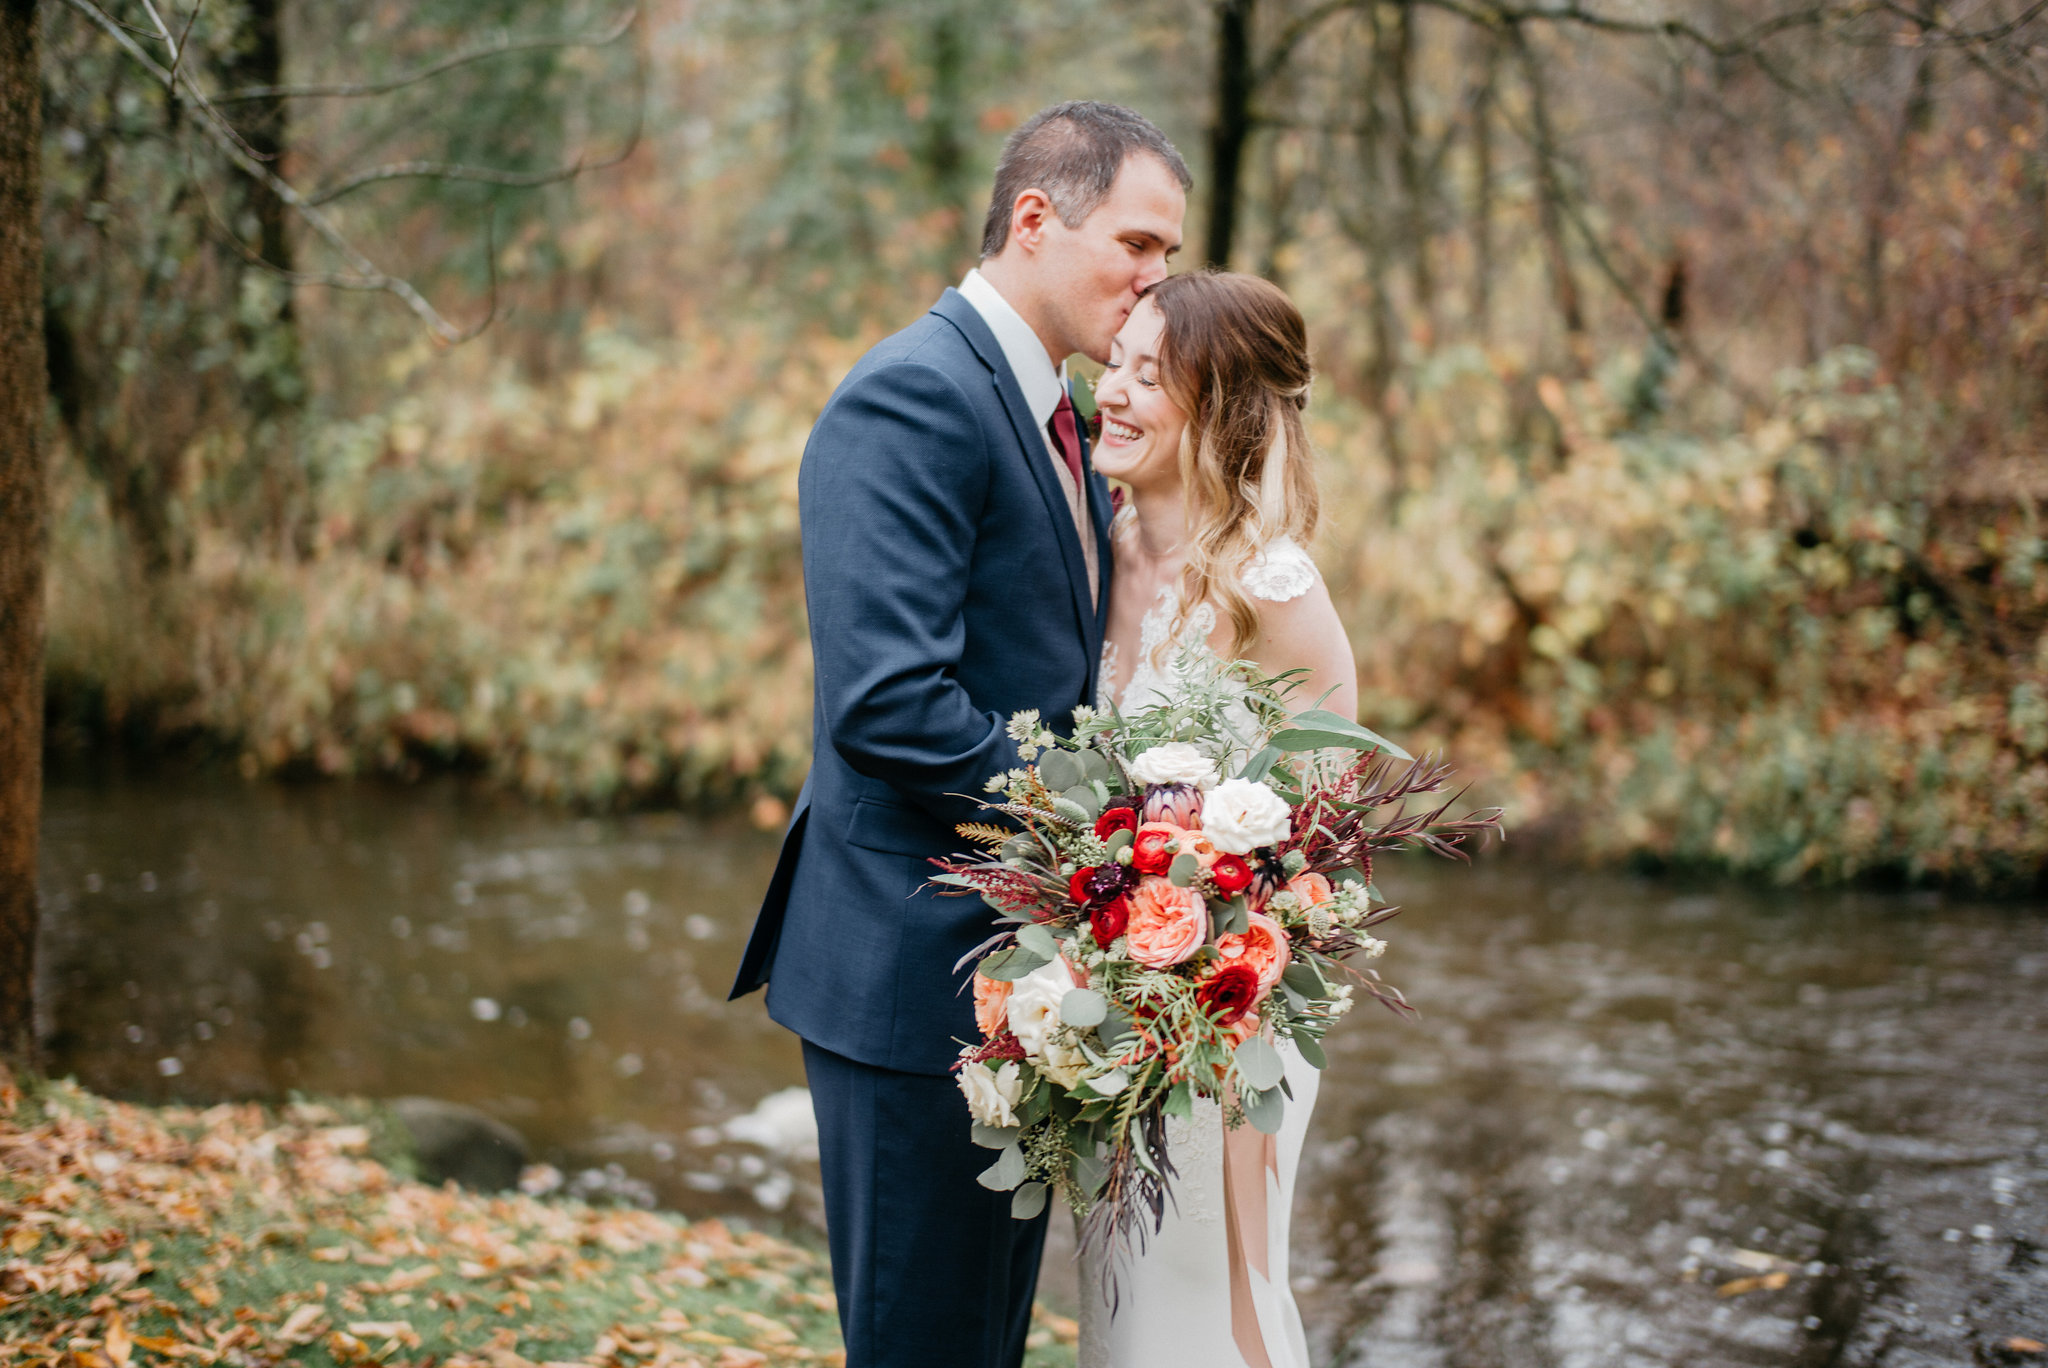 Kelly + Steve | Day of Coordination | Laine Palm Designs